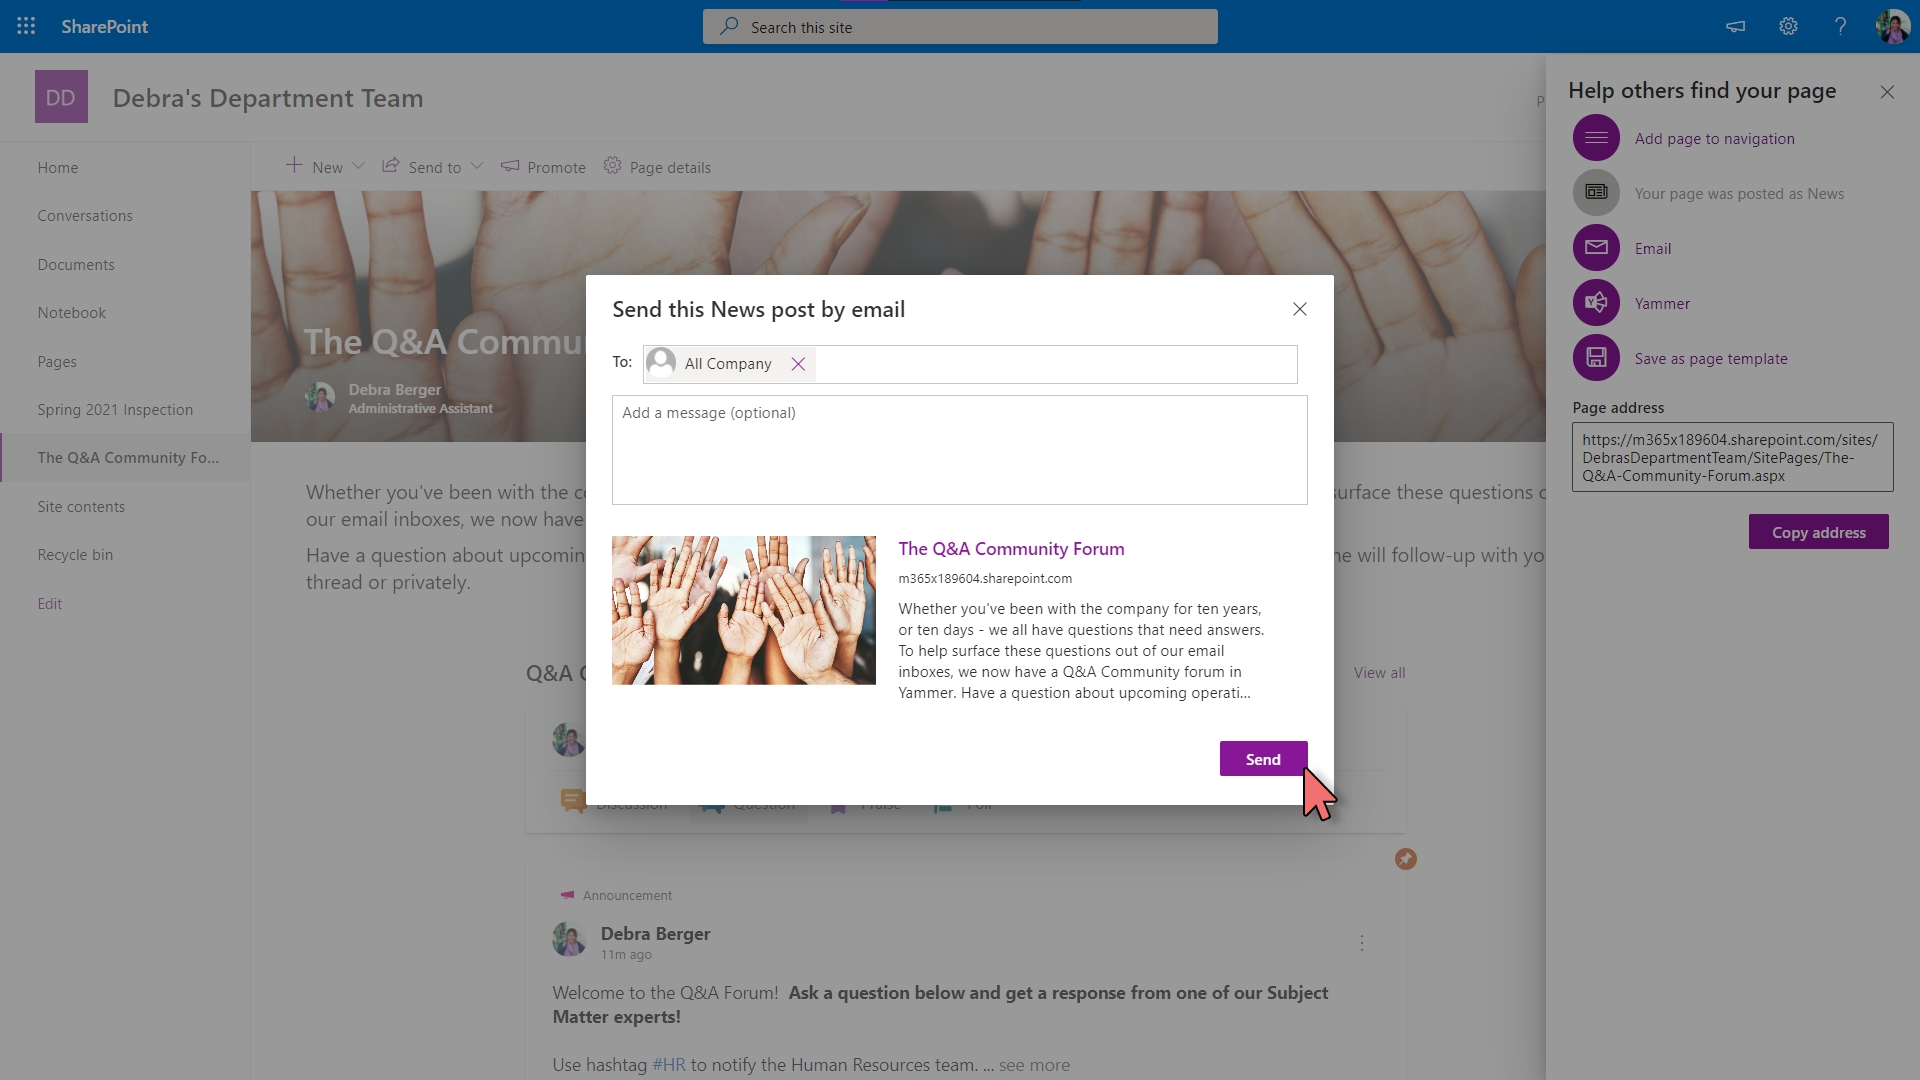 Yammer - Embed in SharePoint – 10